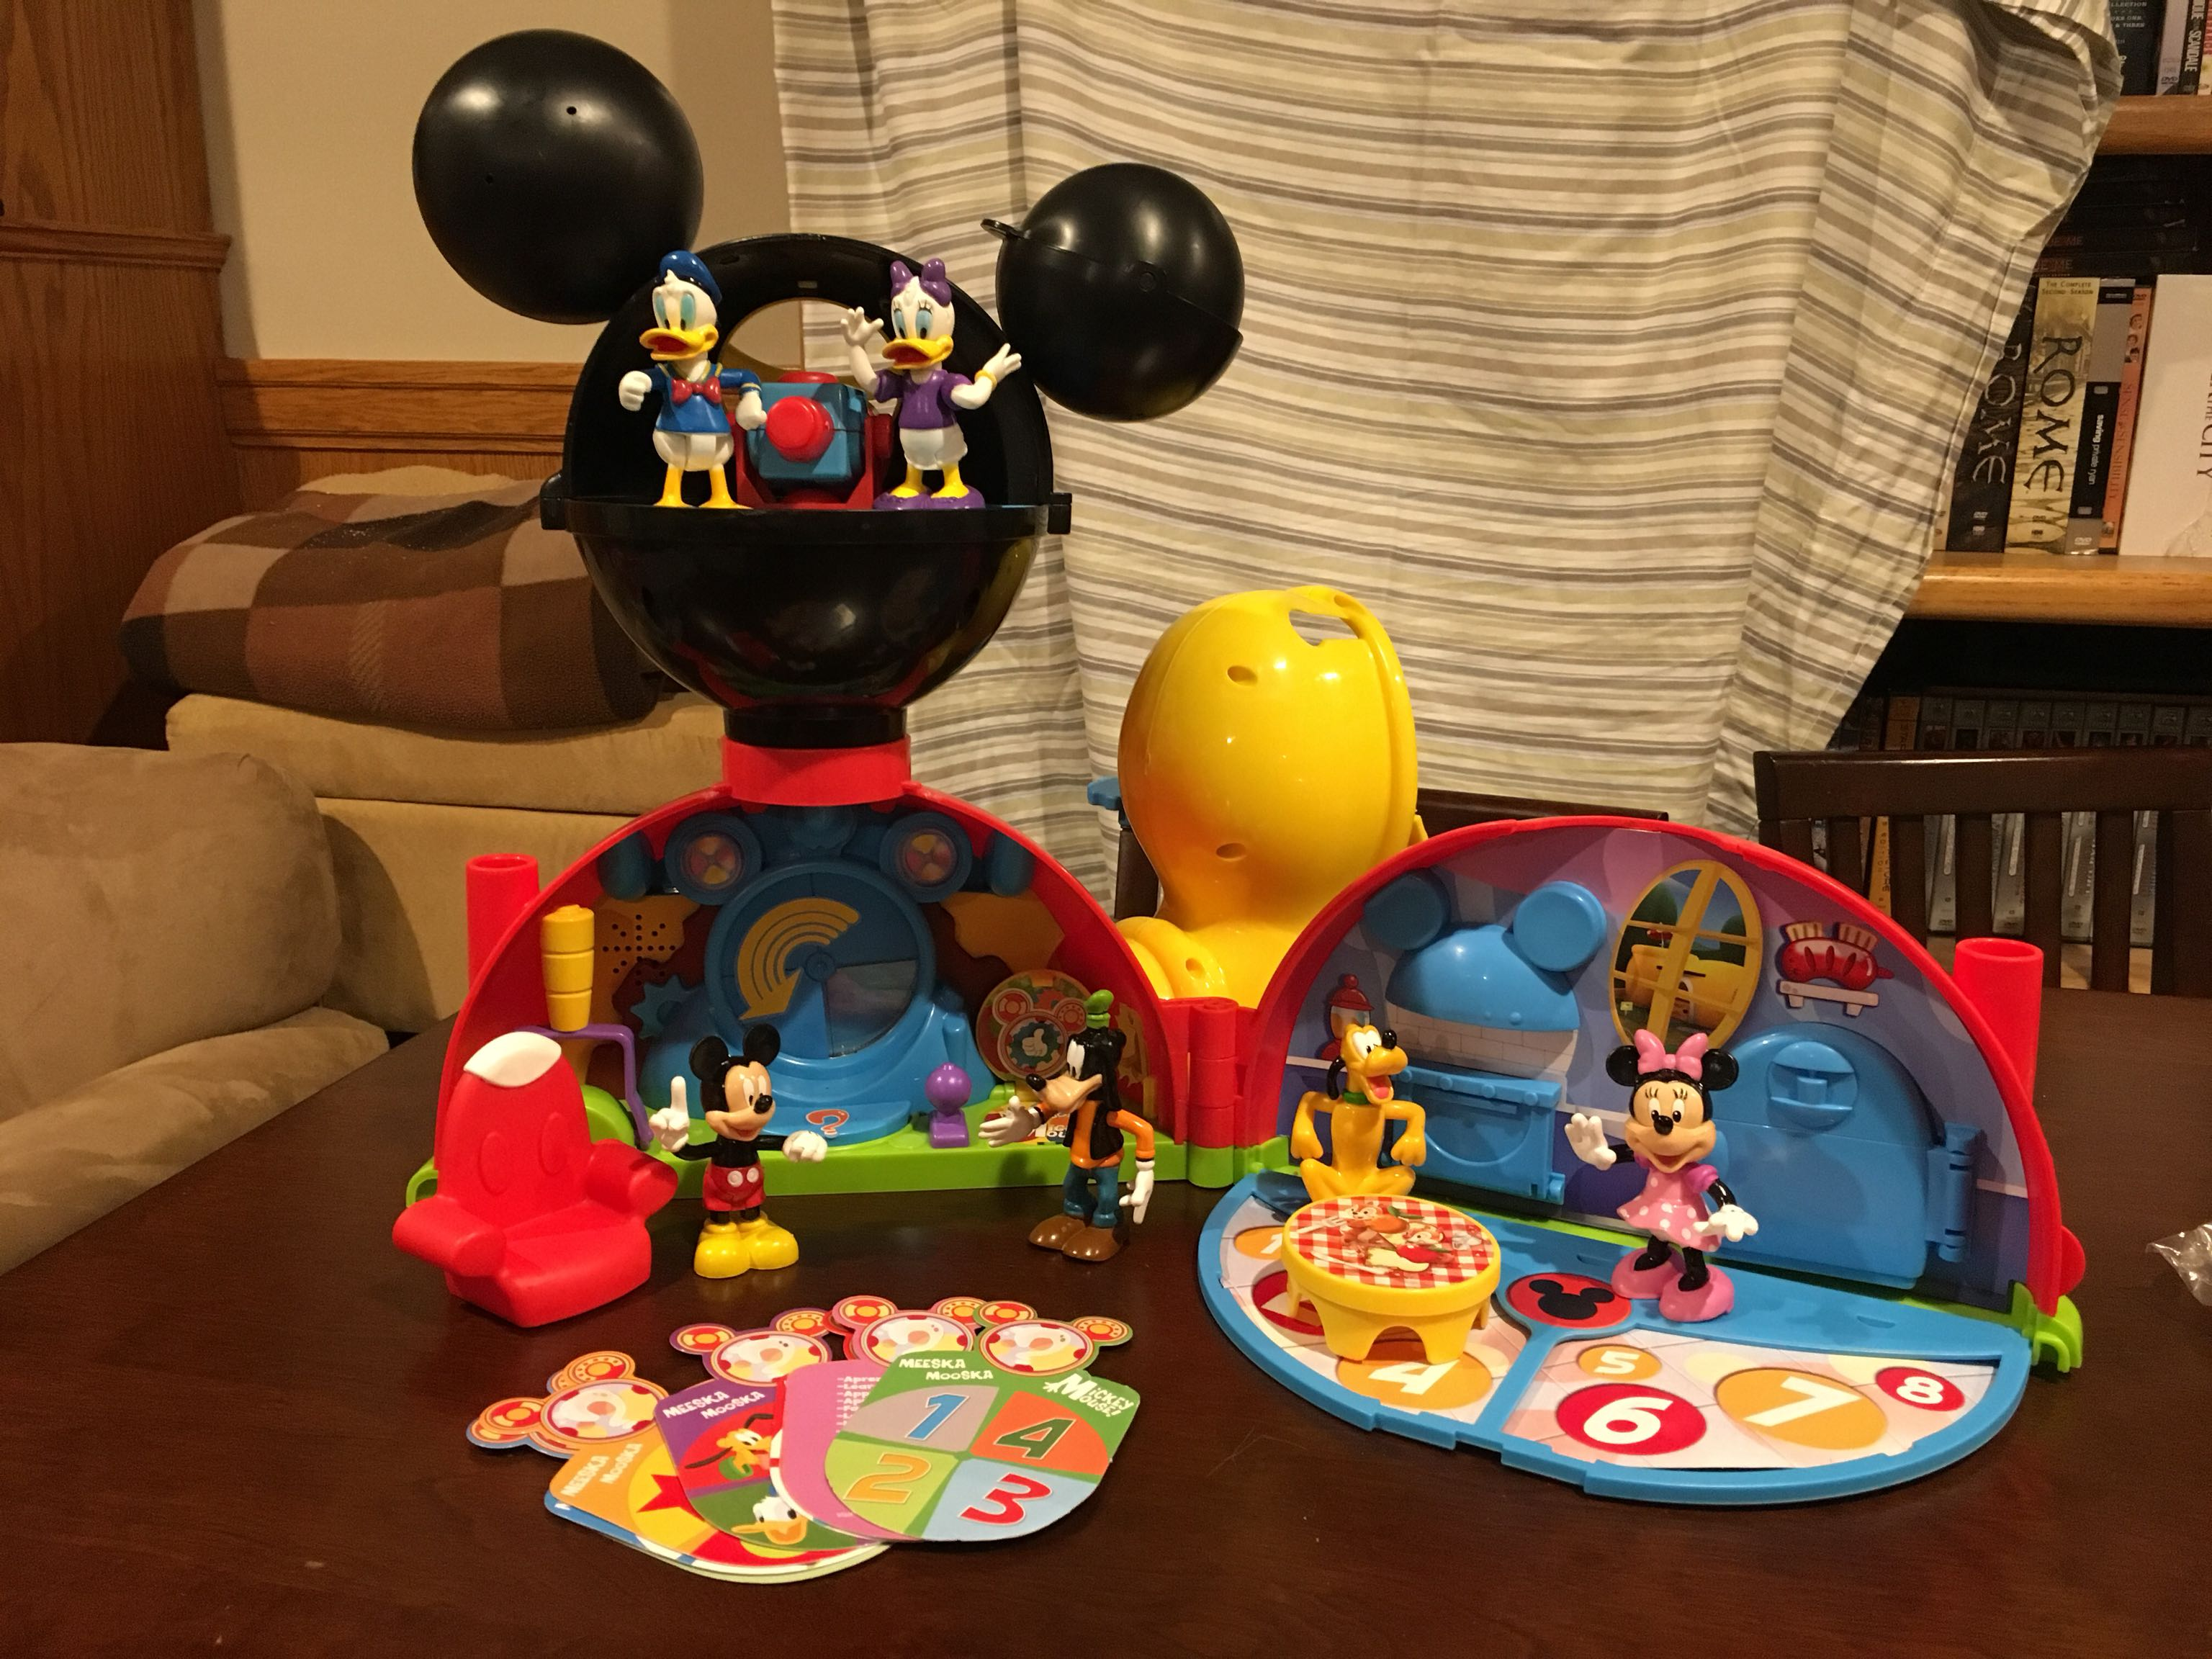 Micky Mouse playset